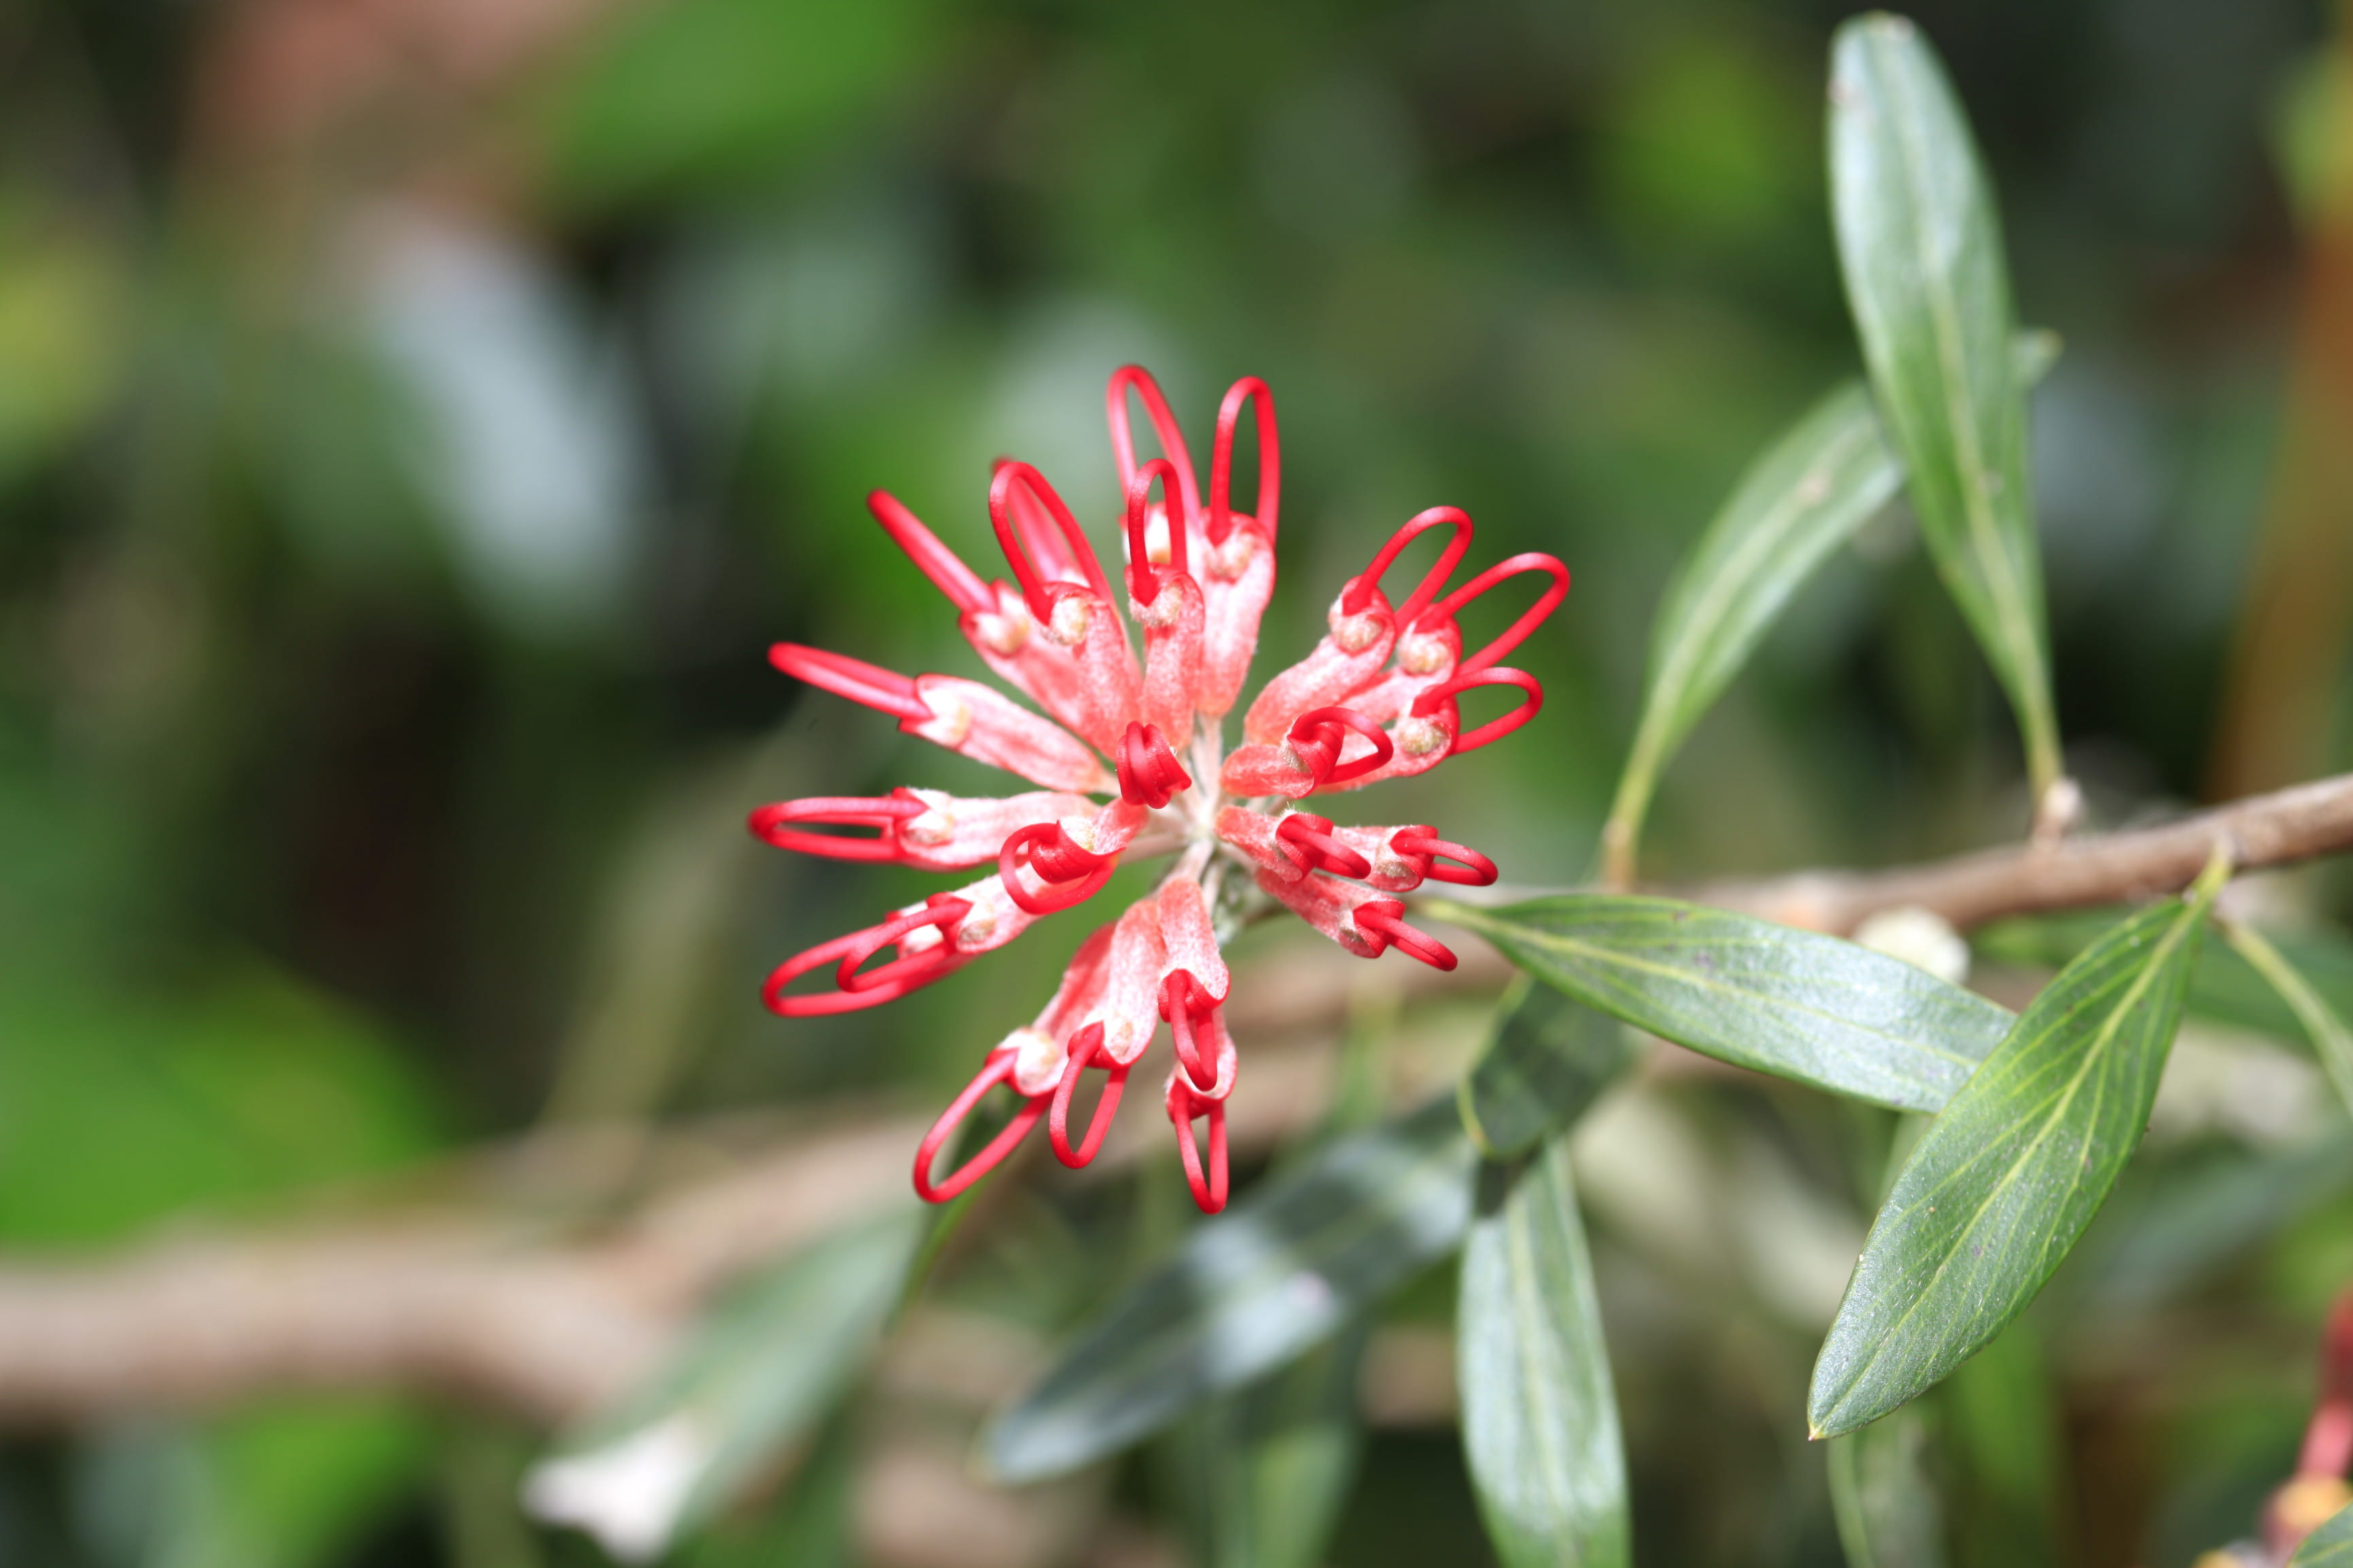 Red spider flower in Brisbane Water National Park. Photo: Rosie Nicolai/OEH